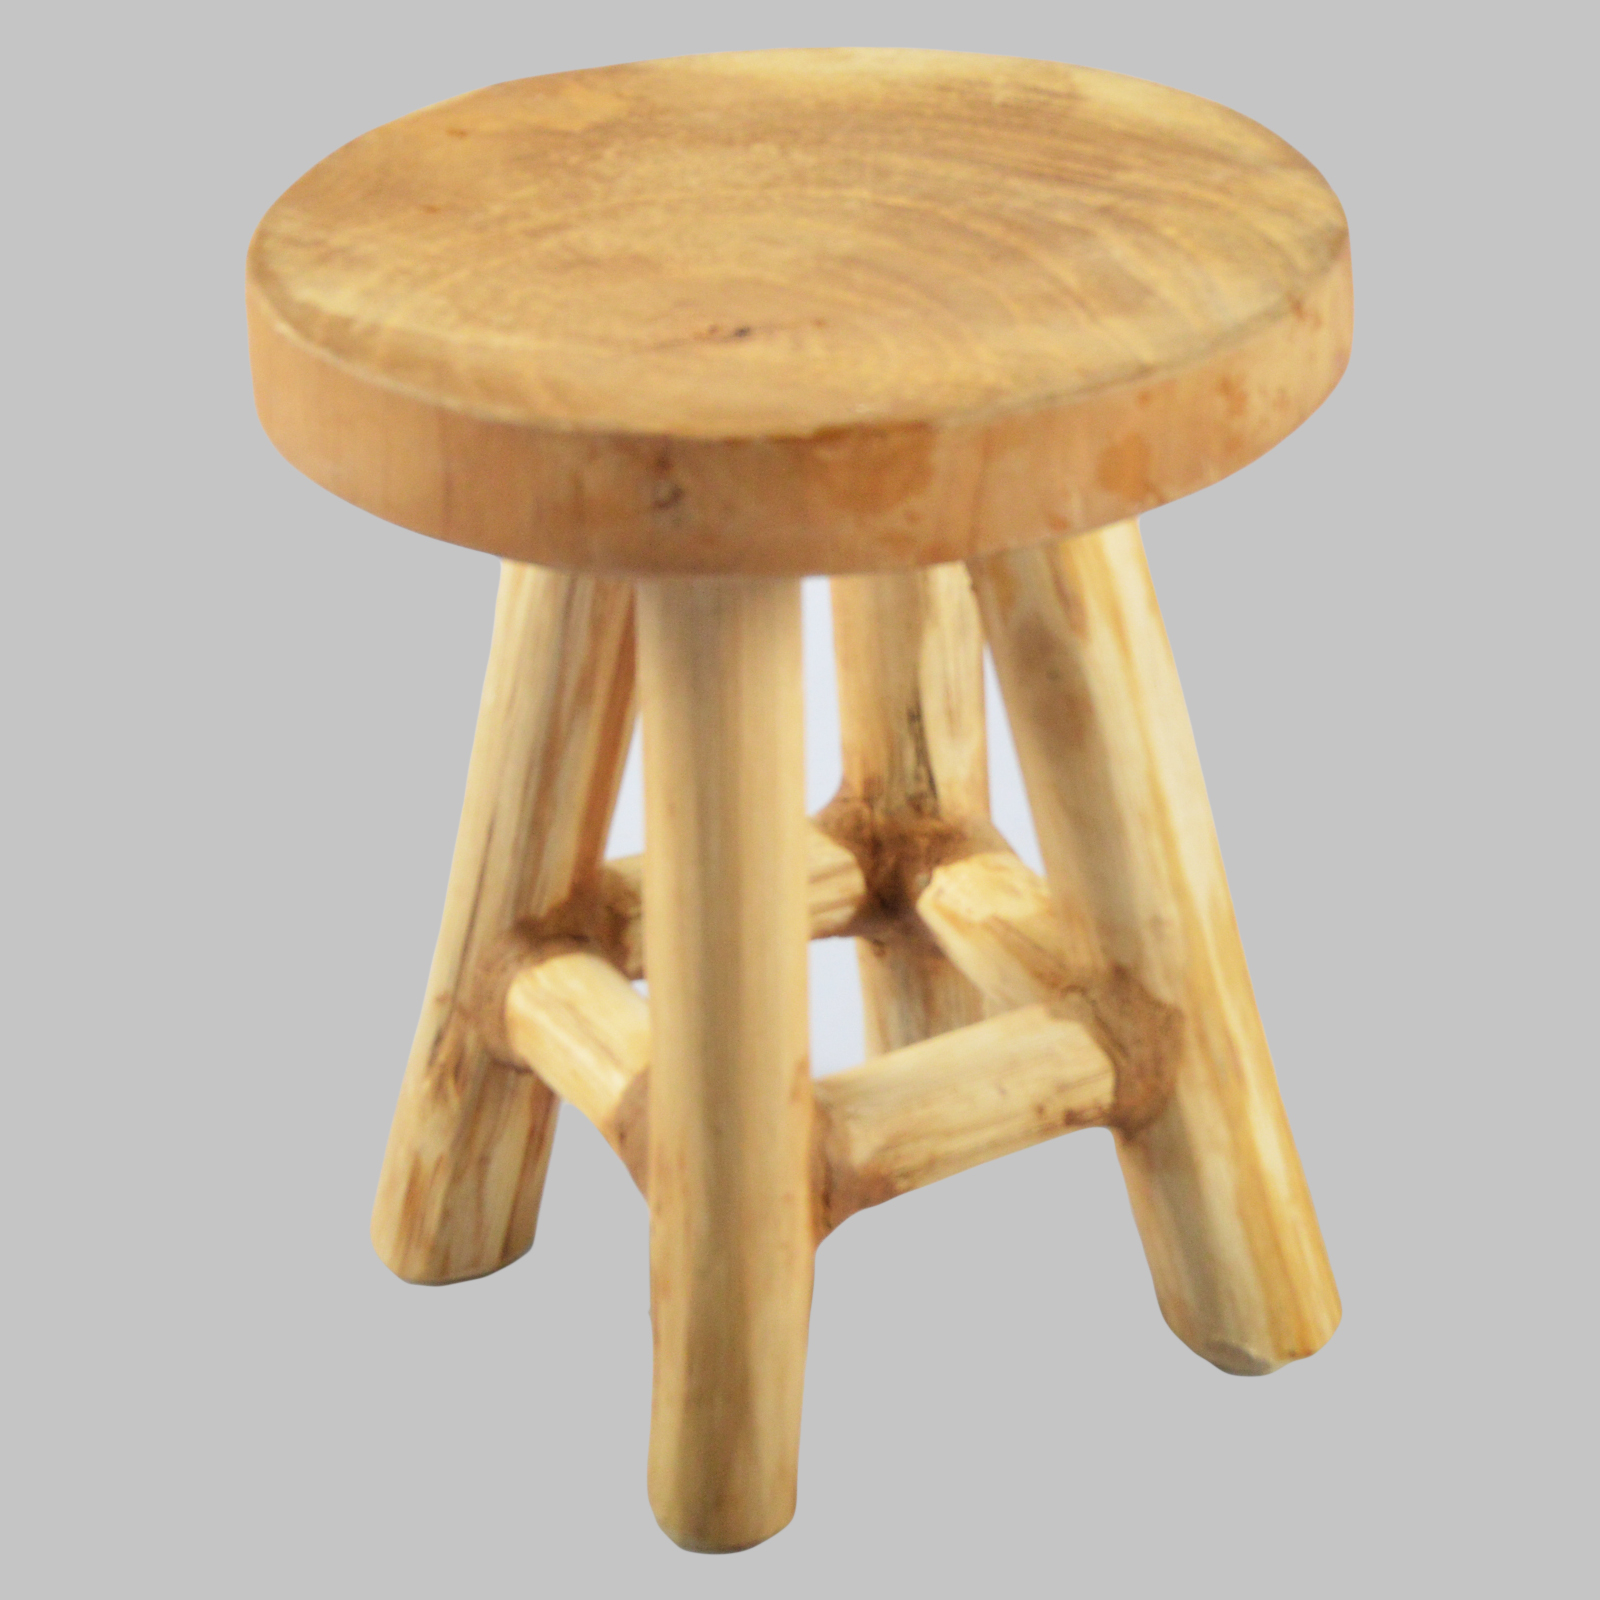 Deco stool wooden sitting round plant stand natural solid